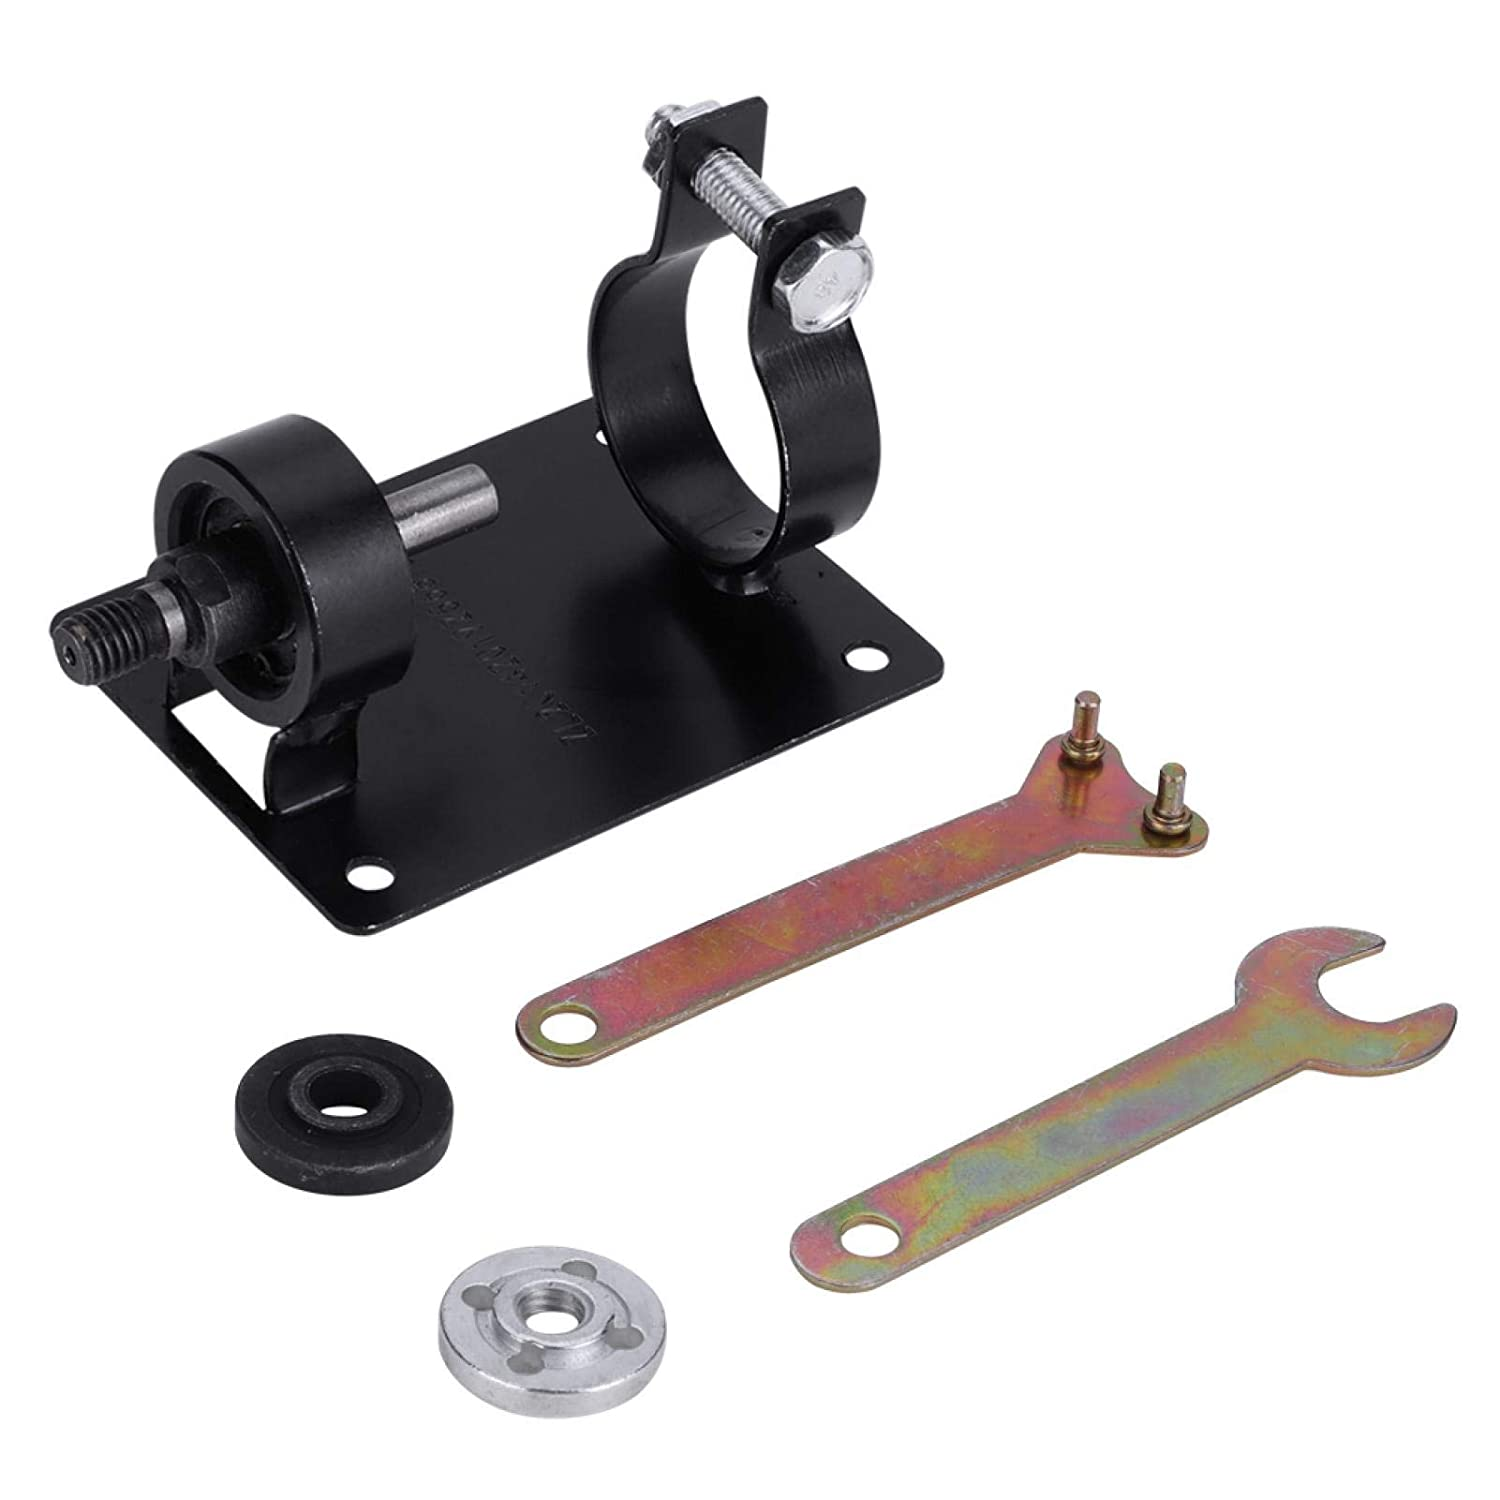 Drill Cutting Seat famous Professional Durable Practical El Max 76% OFF Speed High